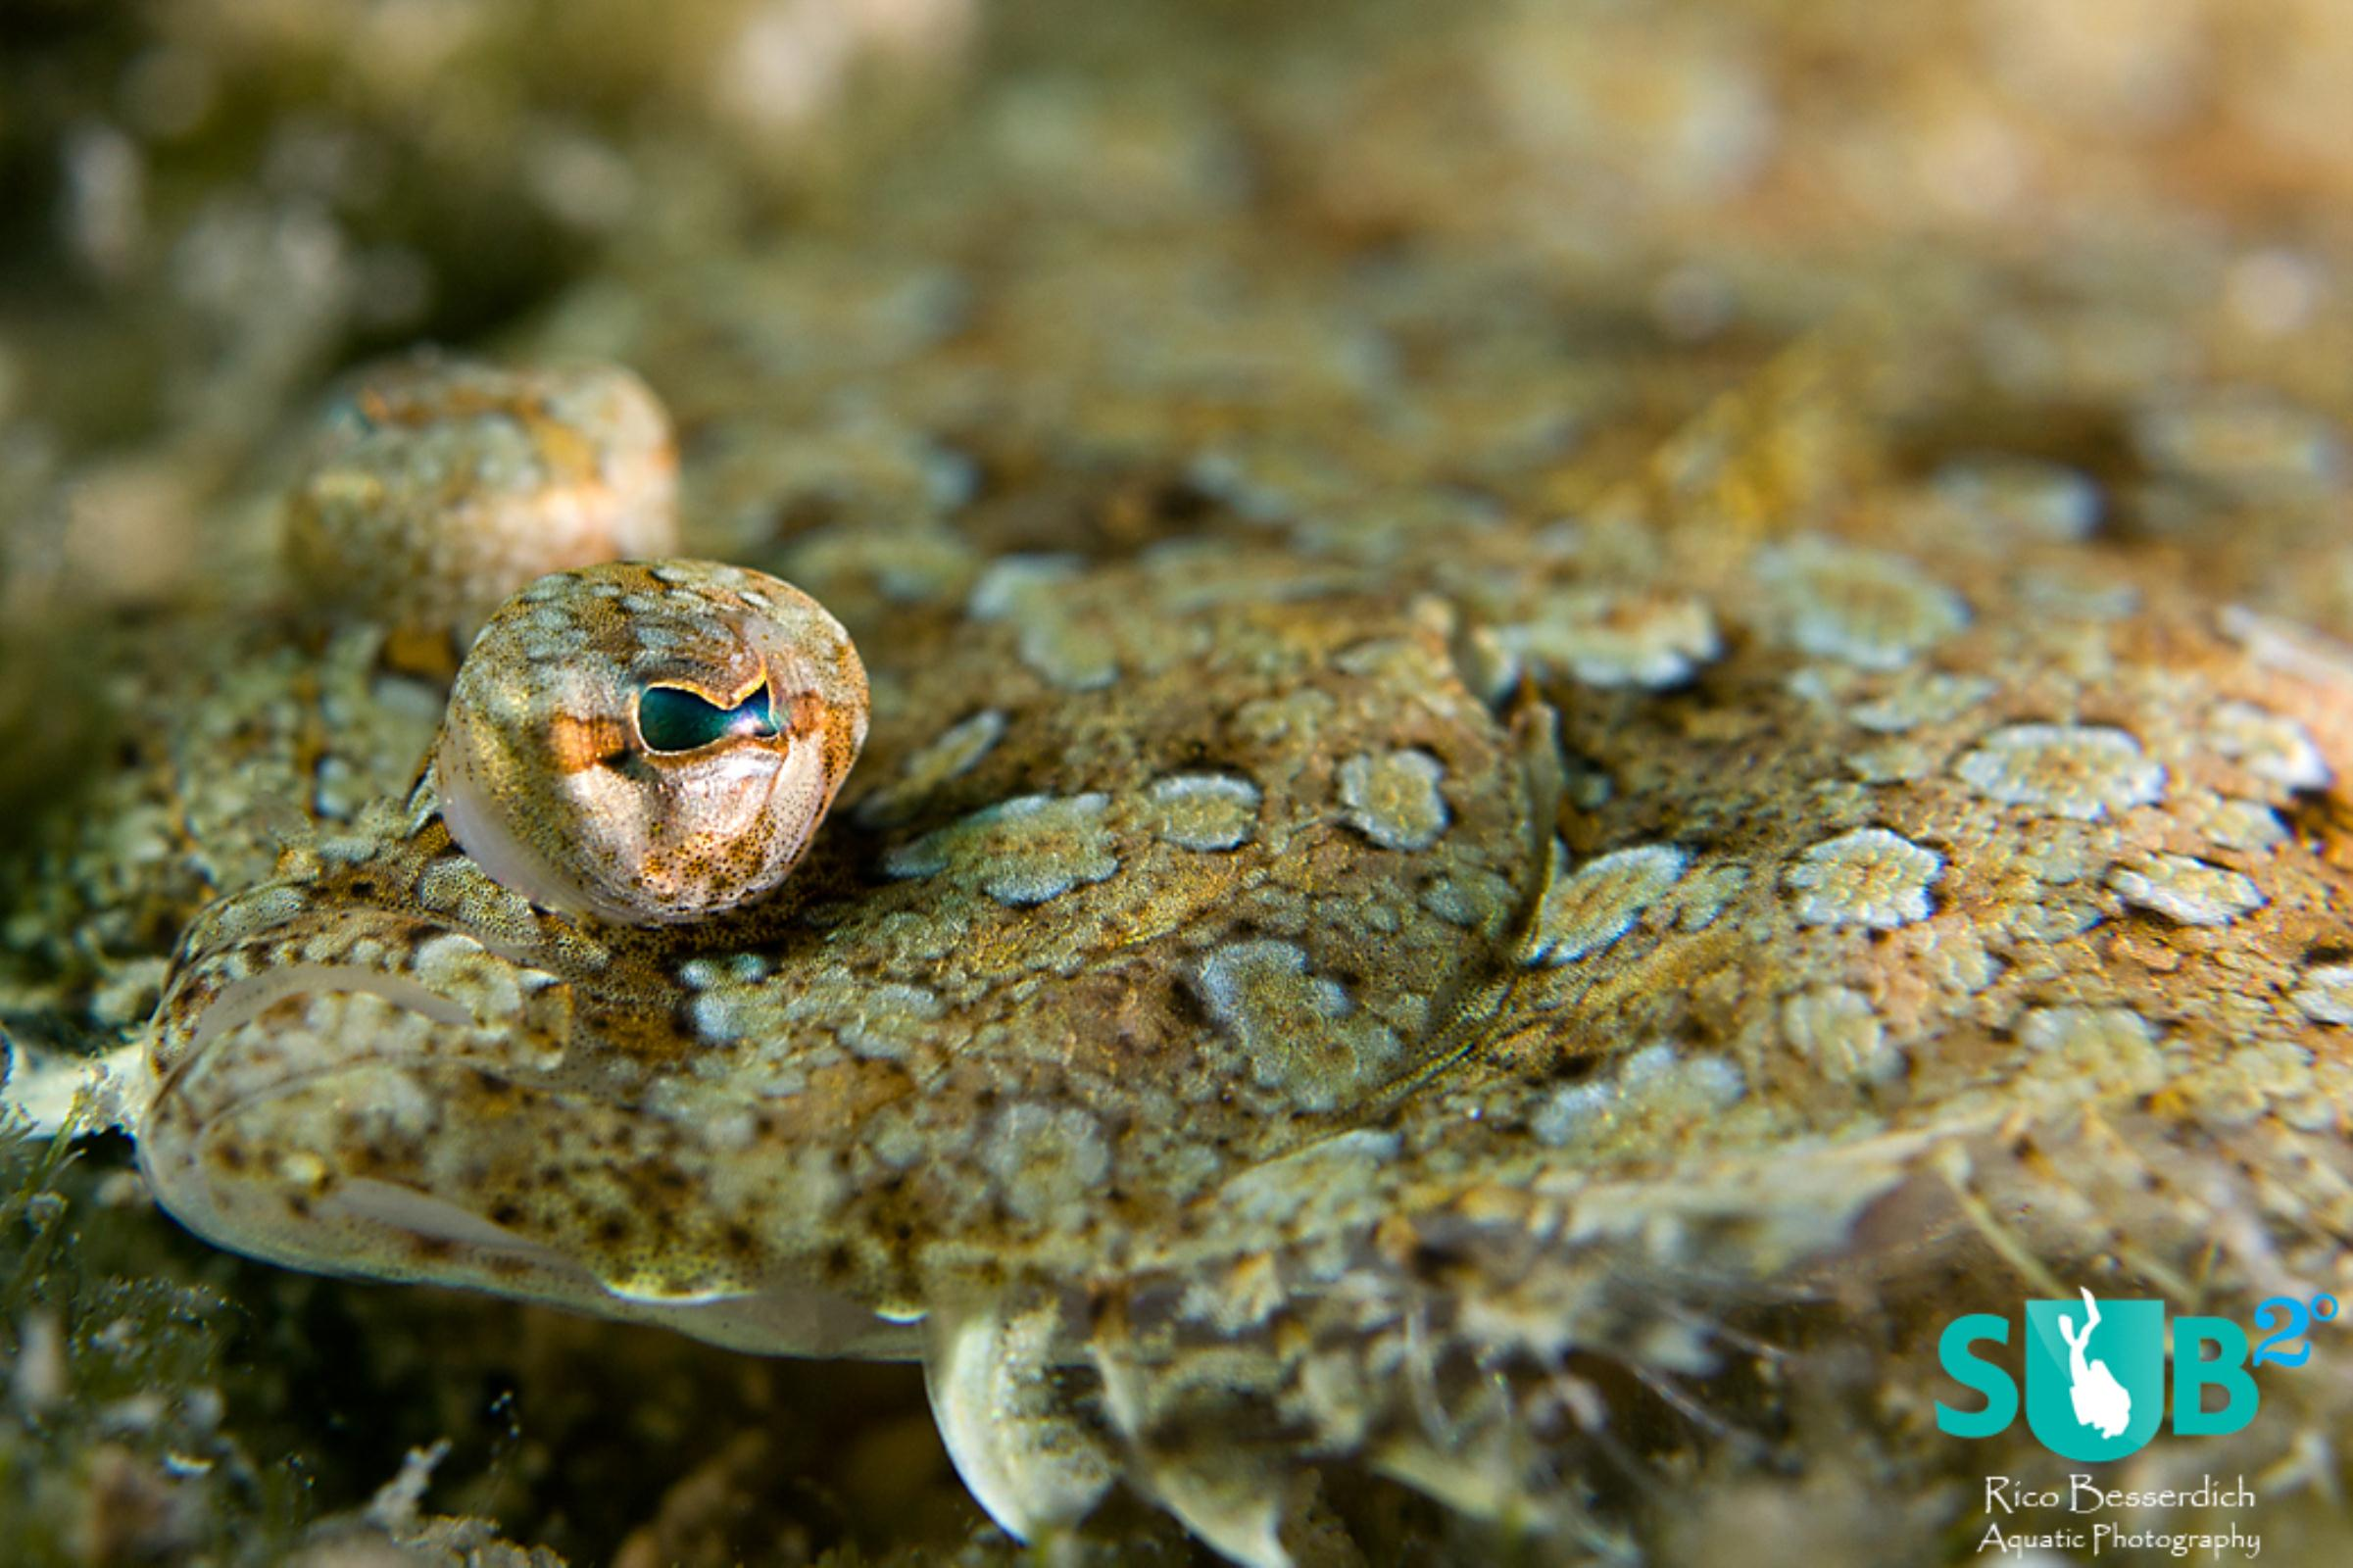 Marine animals that trust their own camouflage are ( once we've spot them ) easy to approach.